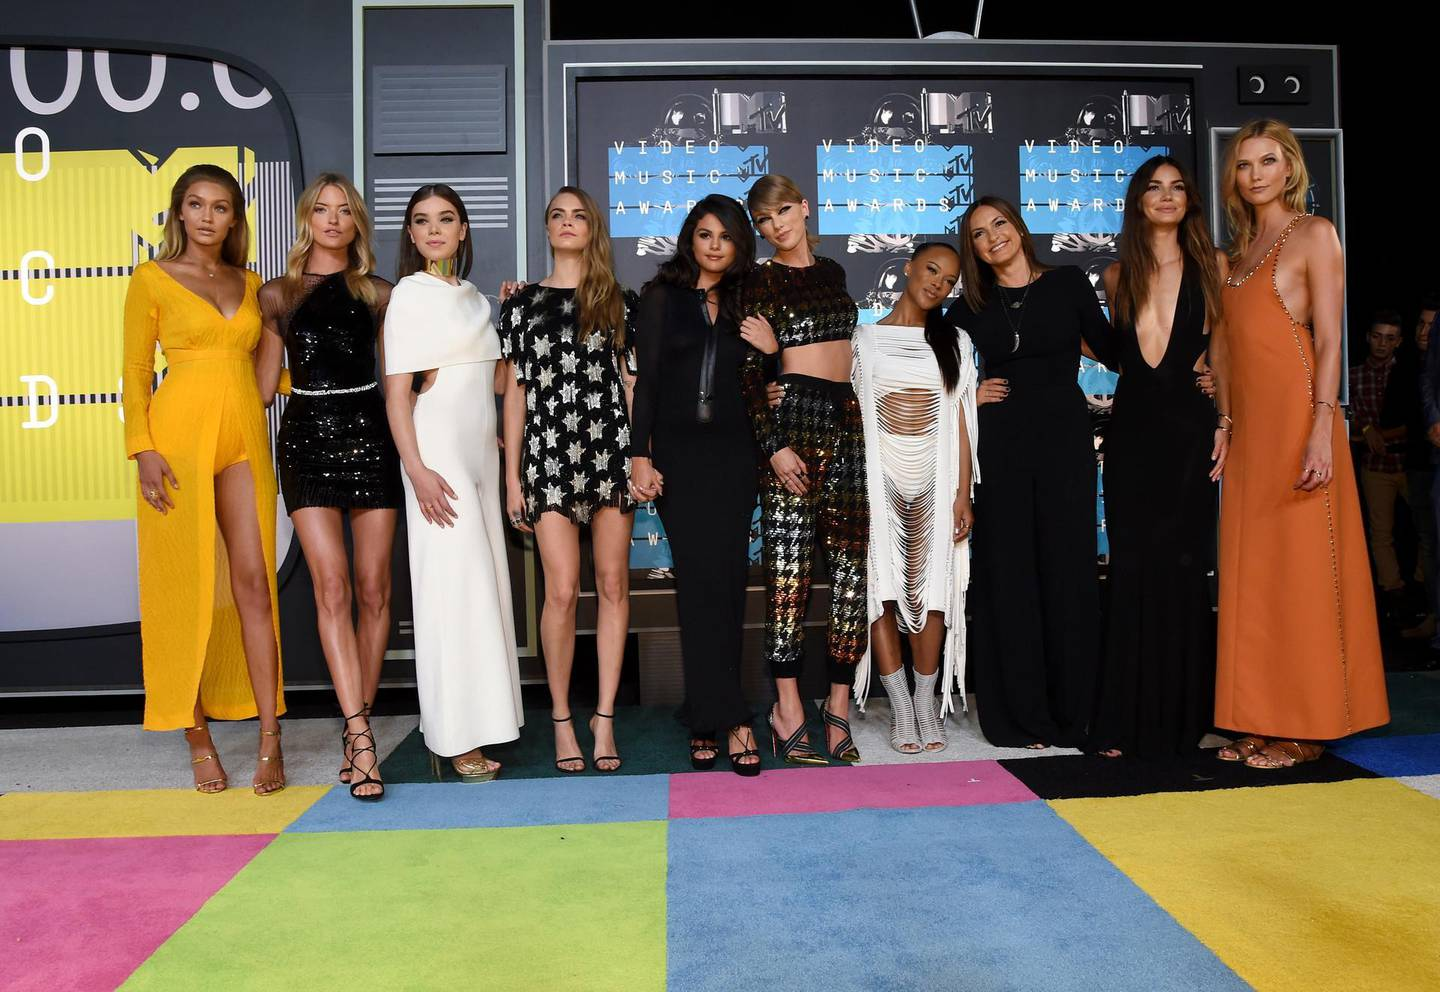 LOS ANGELES, CA - AUGUST 30: (L-R) Models Gigi Hadid, Martha Hunt, actresses Hailee Steinfeld, Cara Delevingne, actress/singer Selena Gomez, recording artist Taylor Swift, actresses Serayah, Mariska Hargitay, models Lily Aldridge and Karlie Kloss attend the 2015 MTV Video Music Awards at Microsoft Theater on August 30, 2015 in Los Angeles, California.   Larry Busacca/Getty Images/AFP